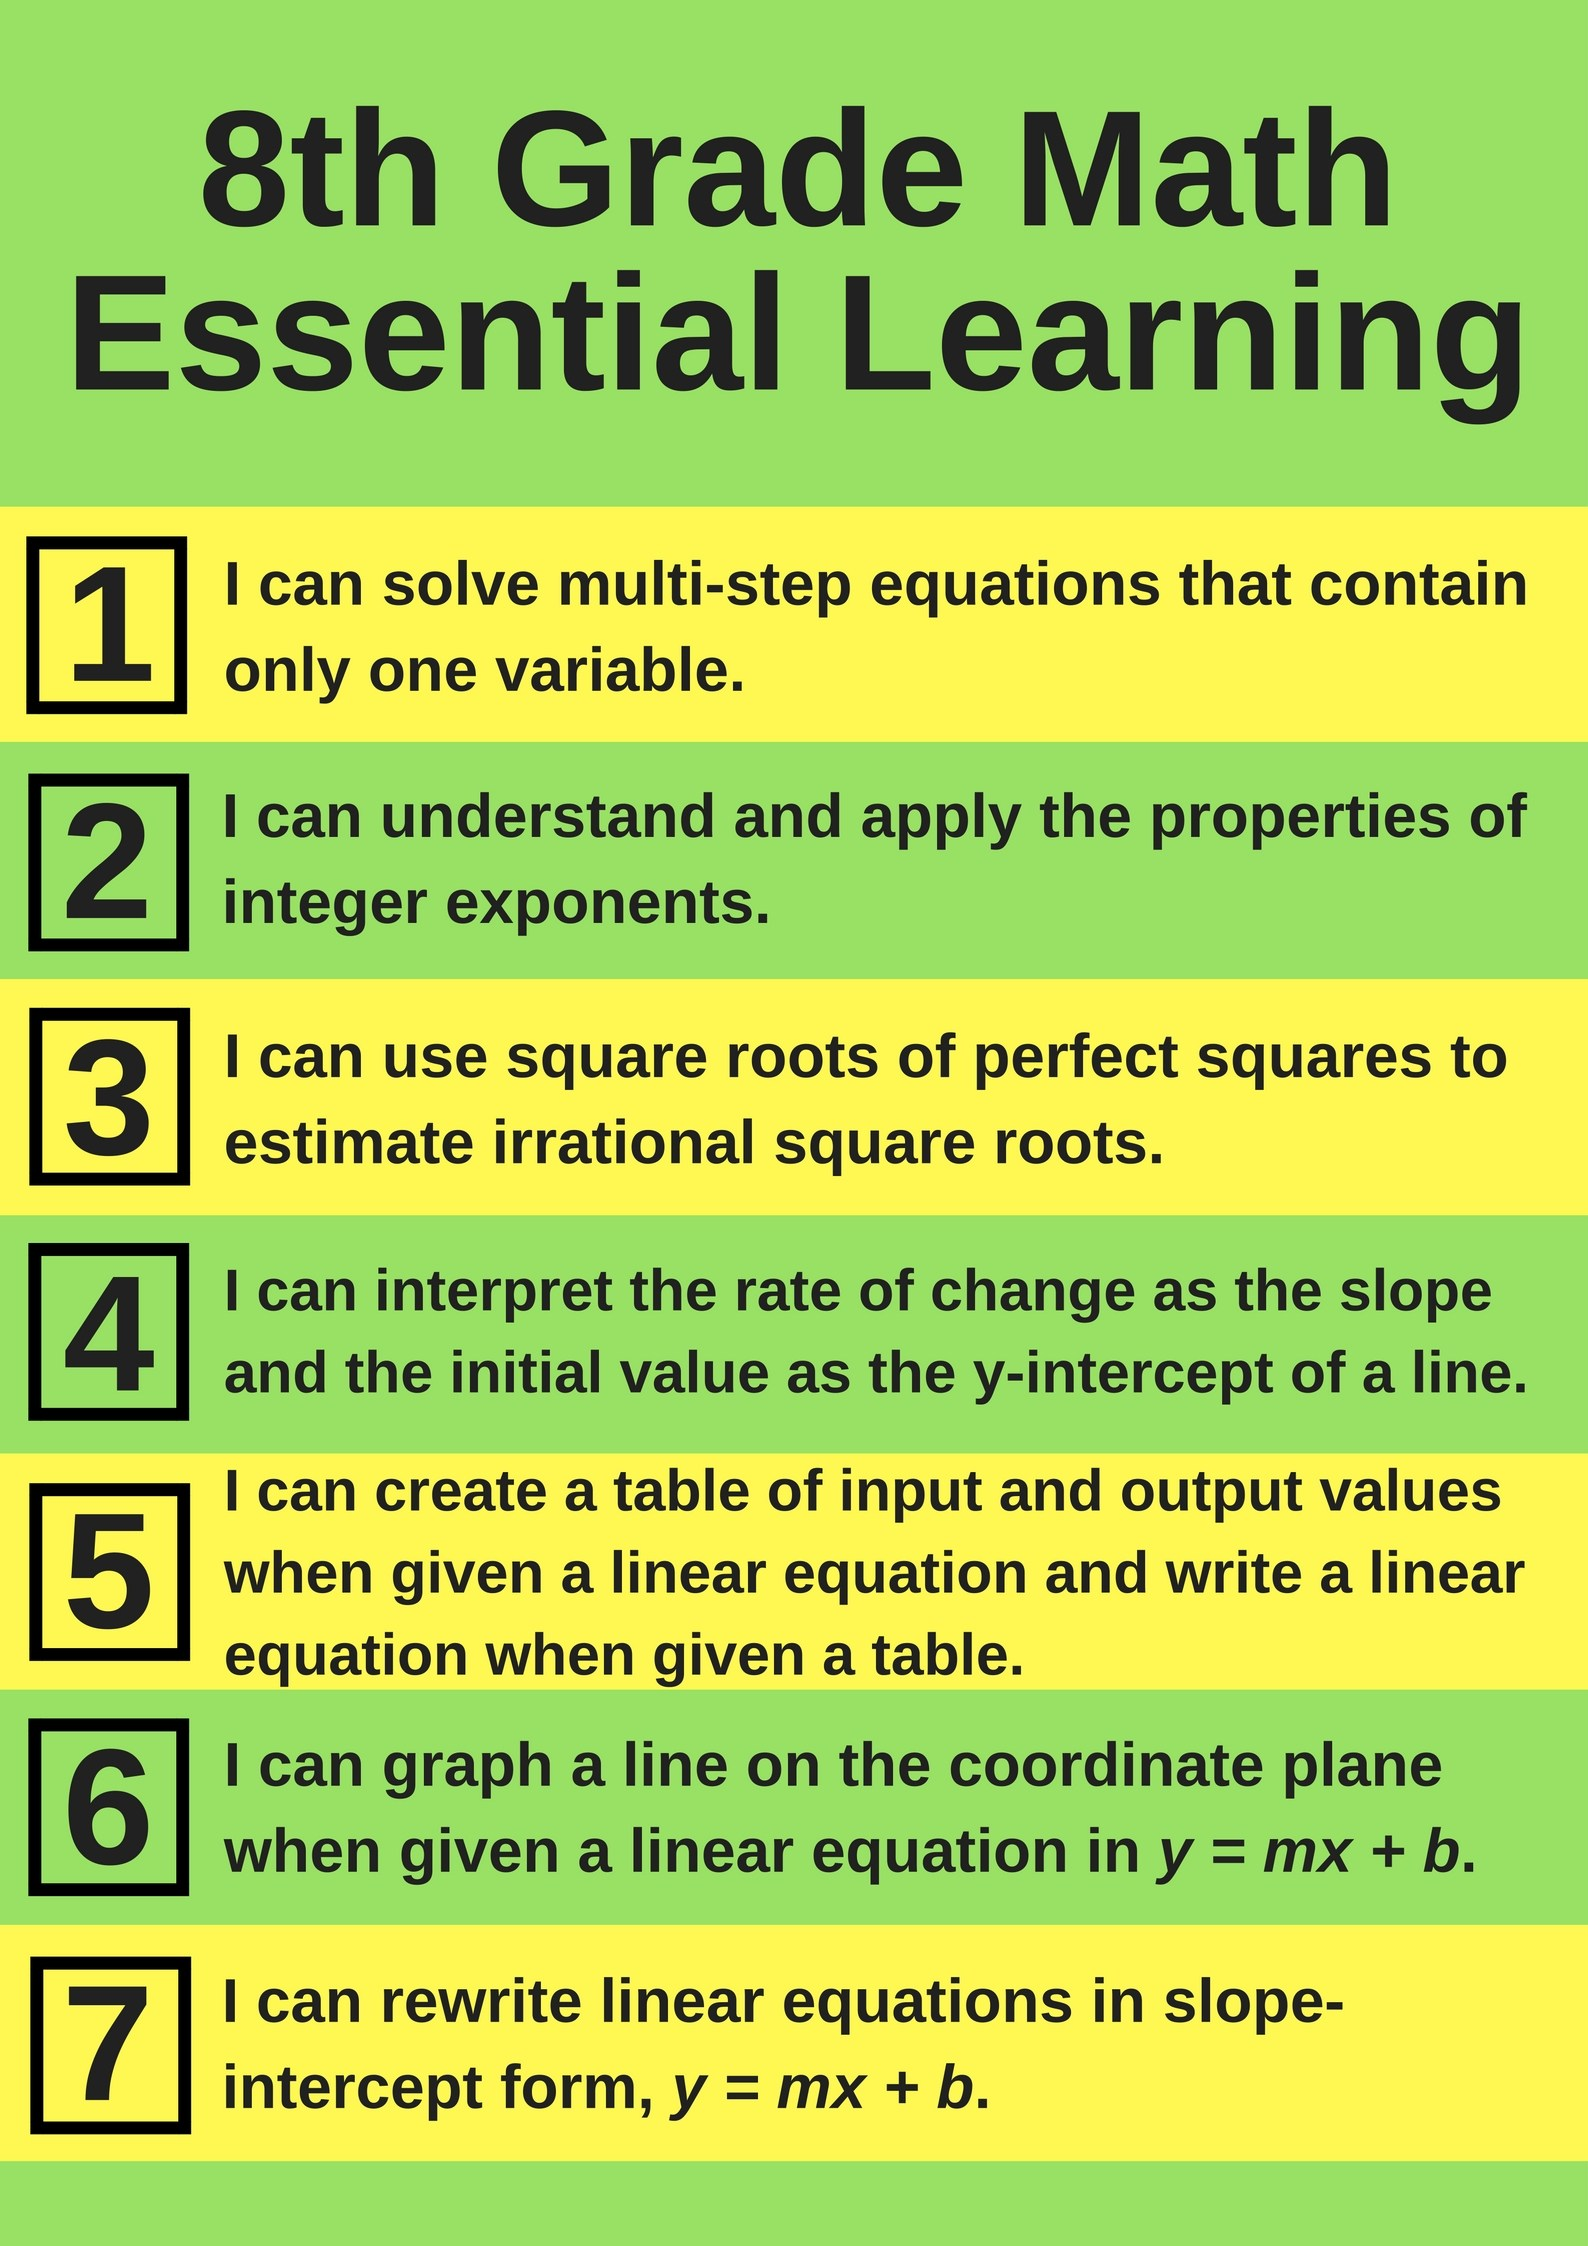 8th Grade Math Essential Learning